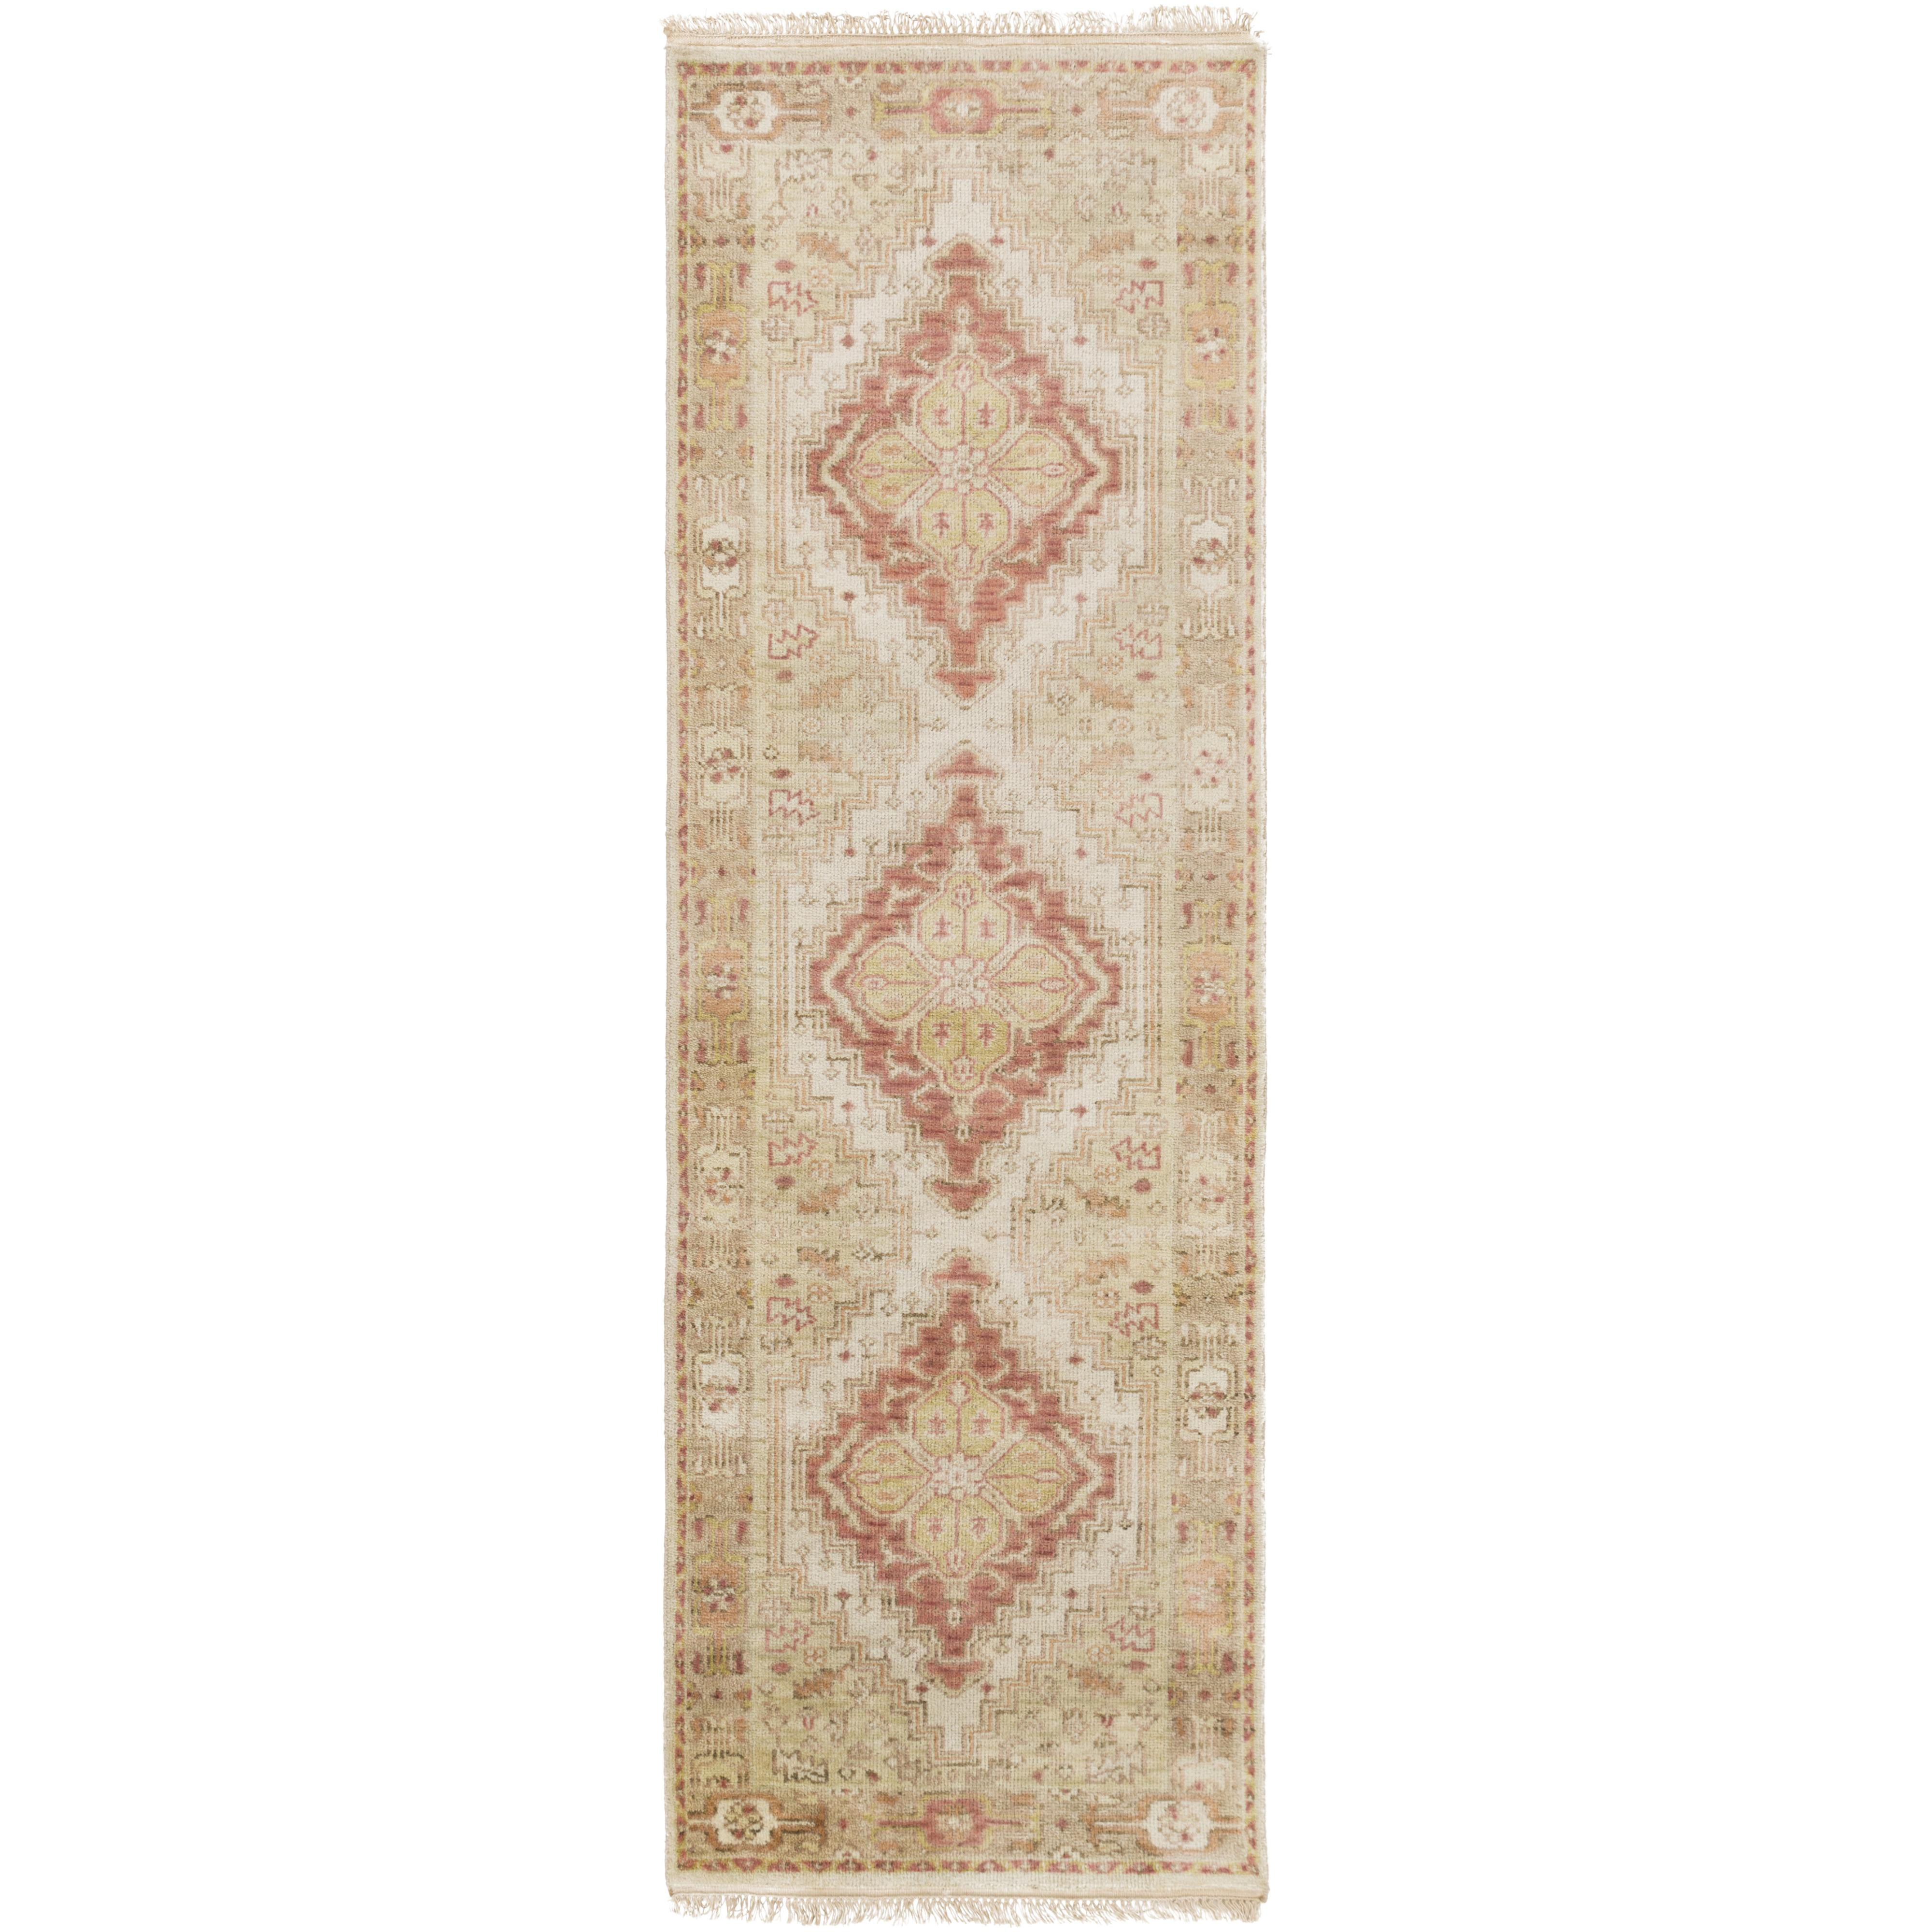 """Oriental Rugs Hagerstown Md: 2'6"""" X 8' By Surya"""